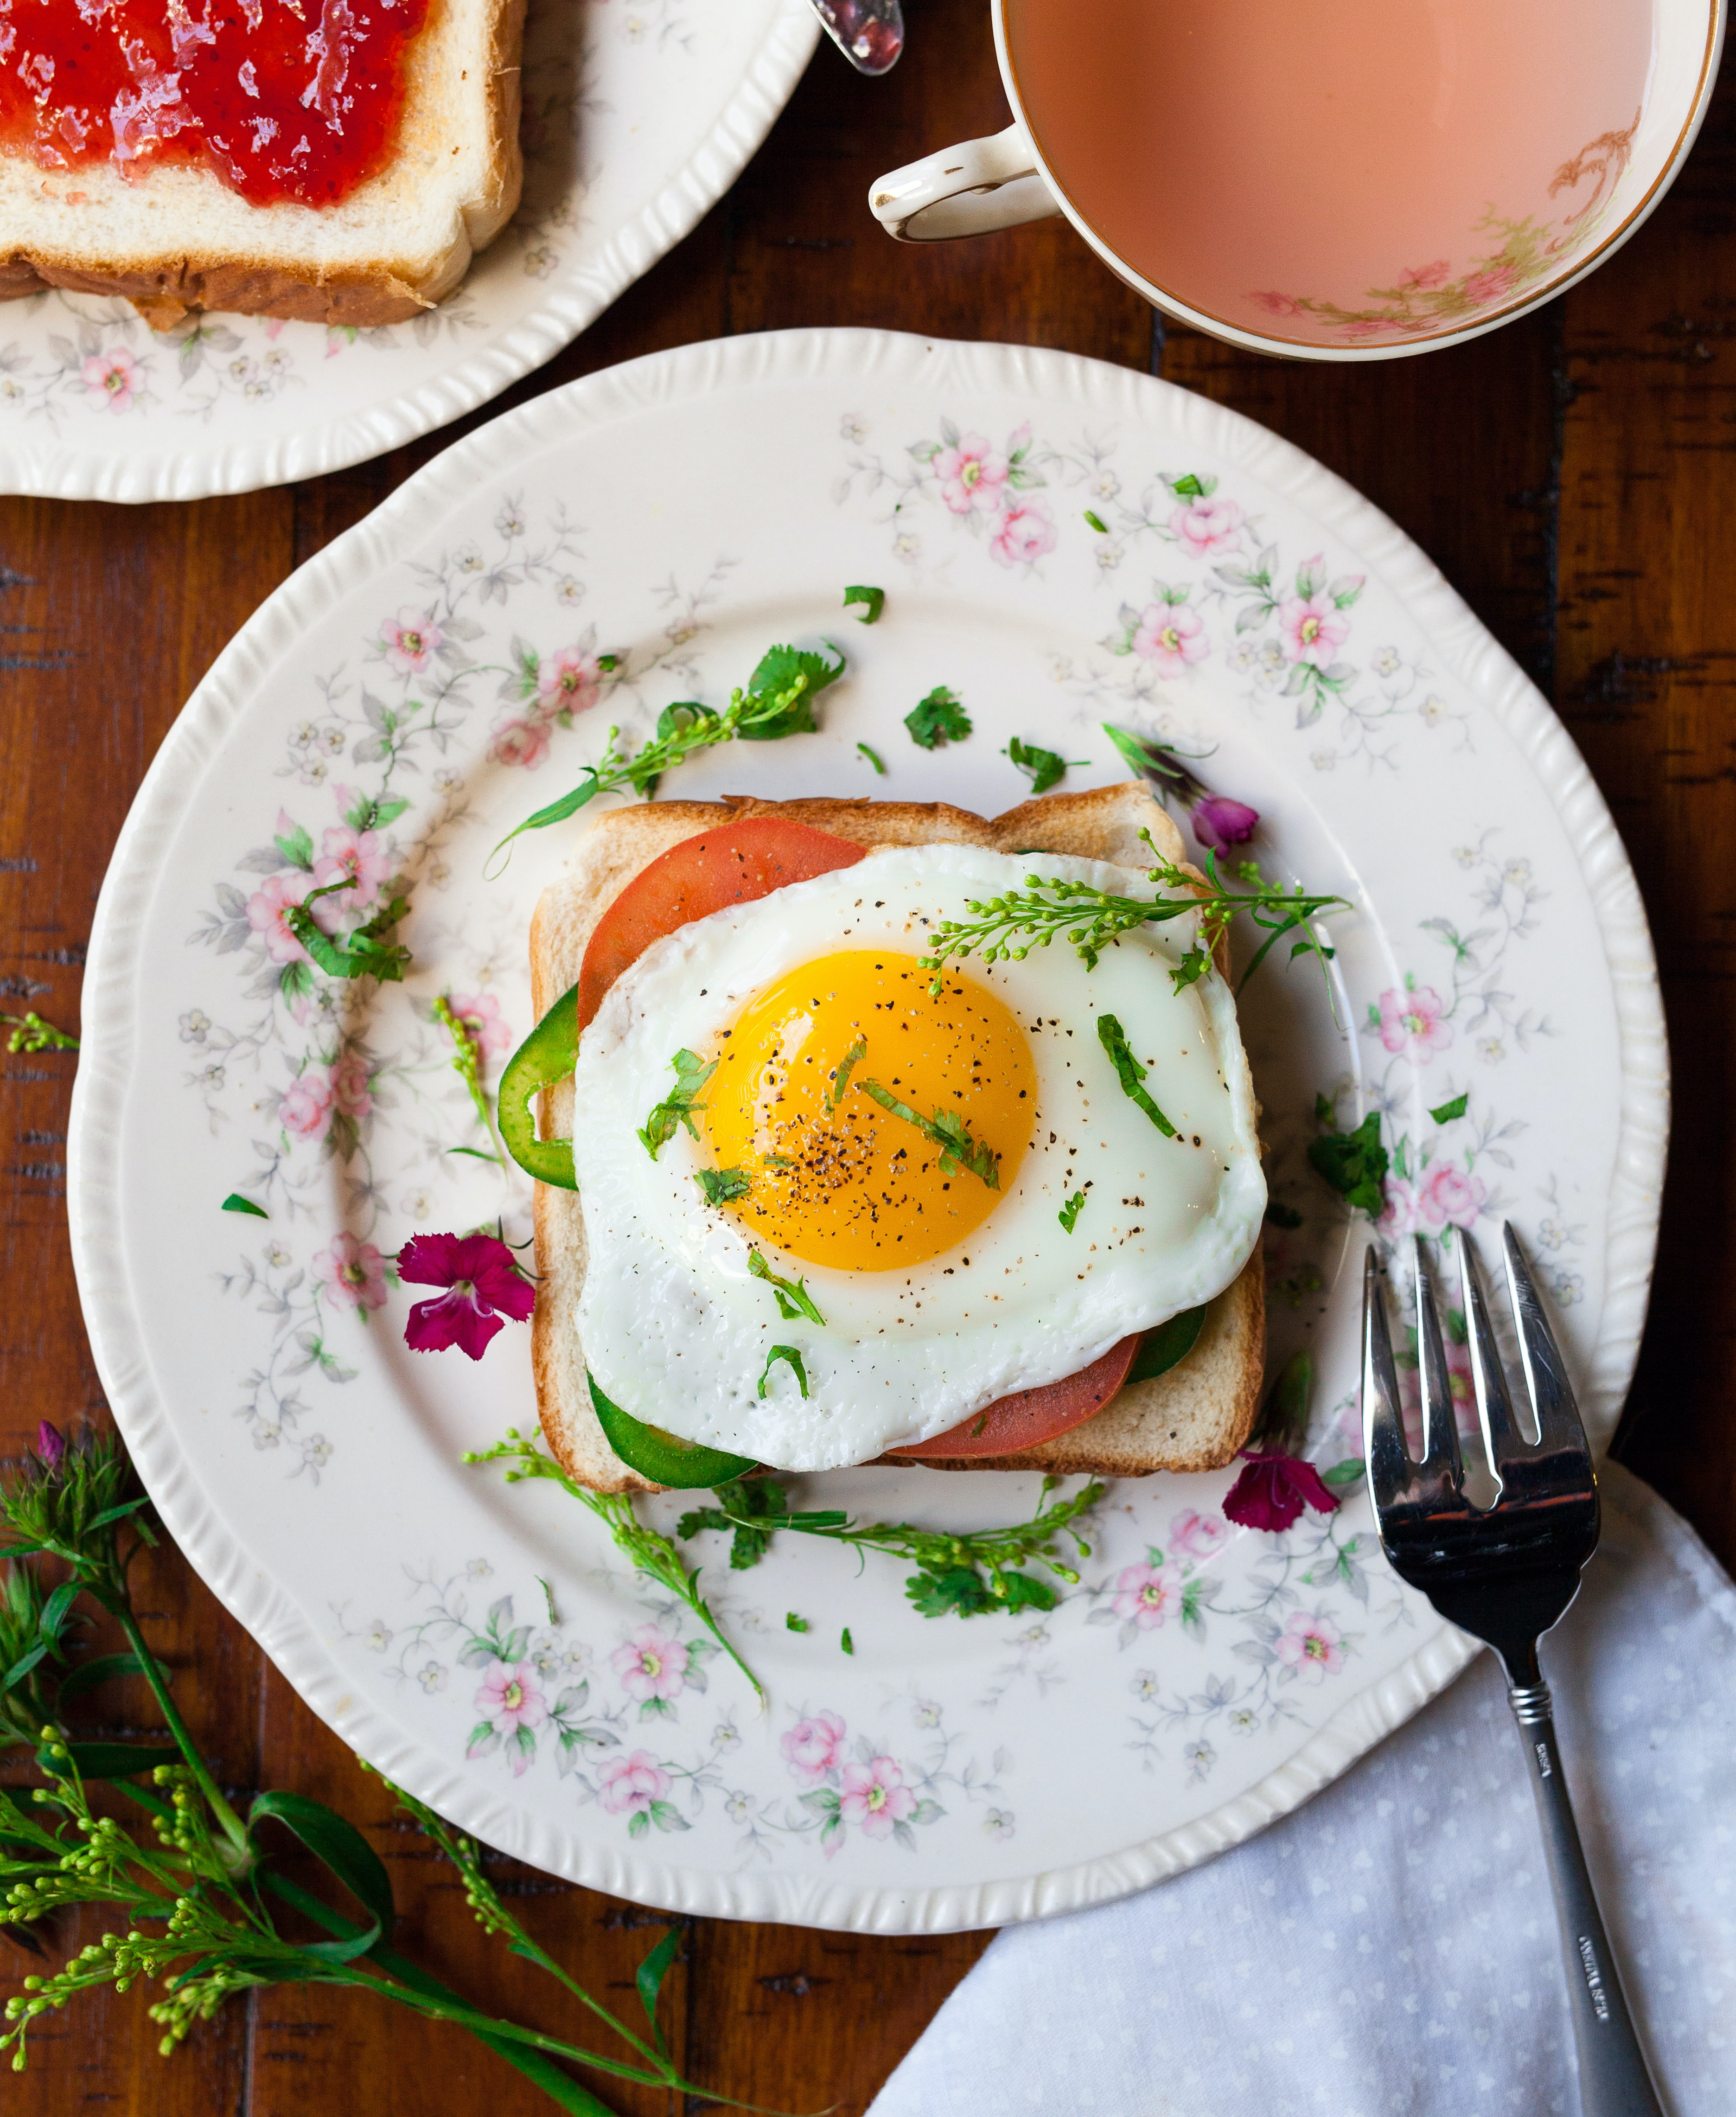 Breakfast toast with fried egg, tomato, and herbs